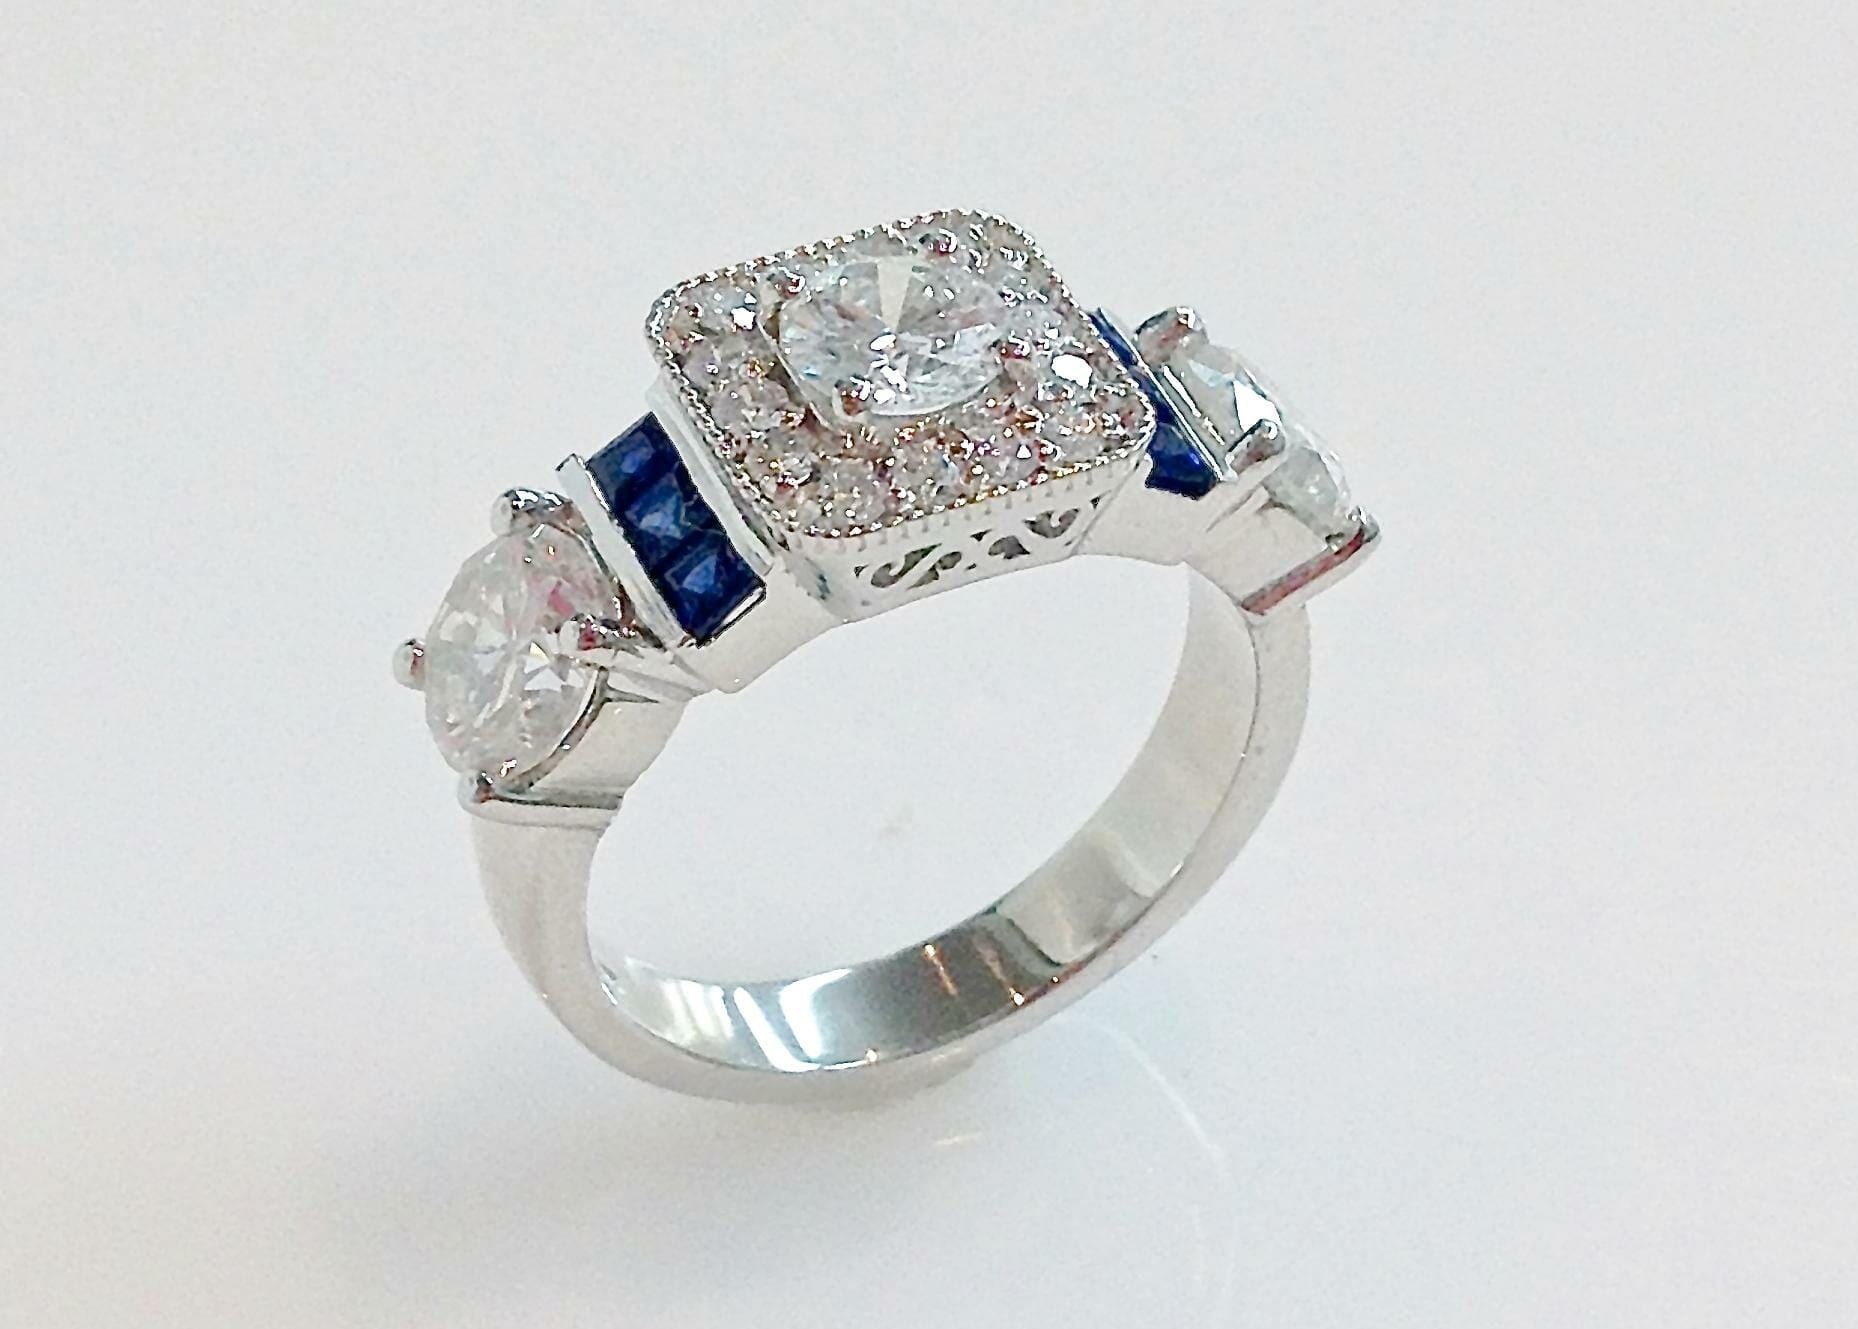 Square Halo Diamond Ring with Sapphires |Keezing Kreations